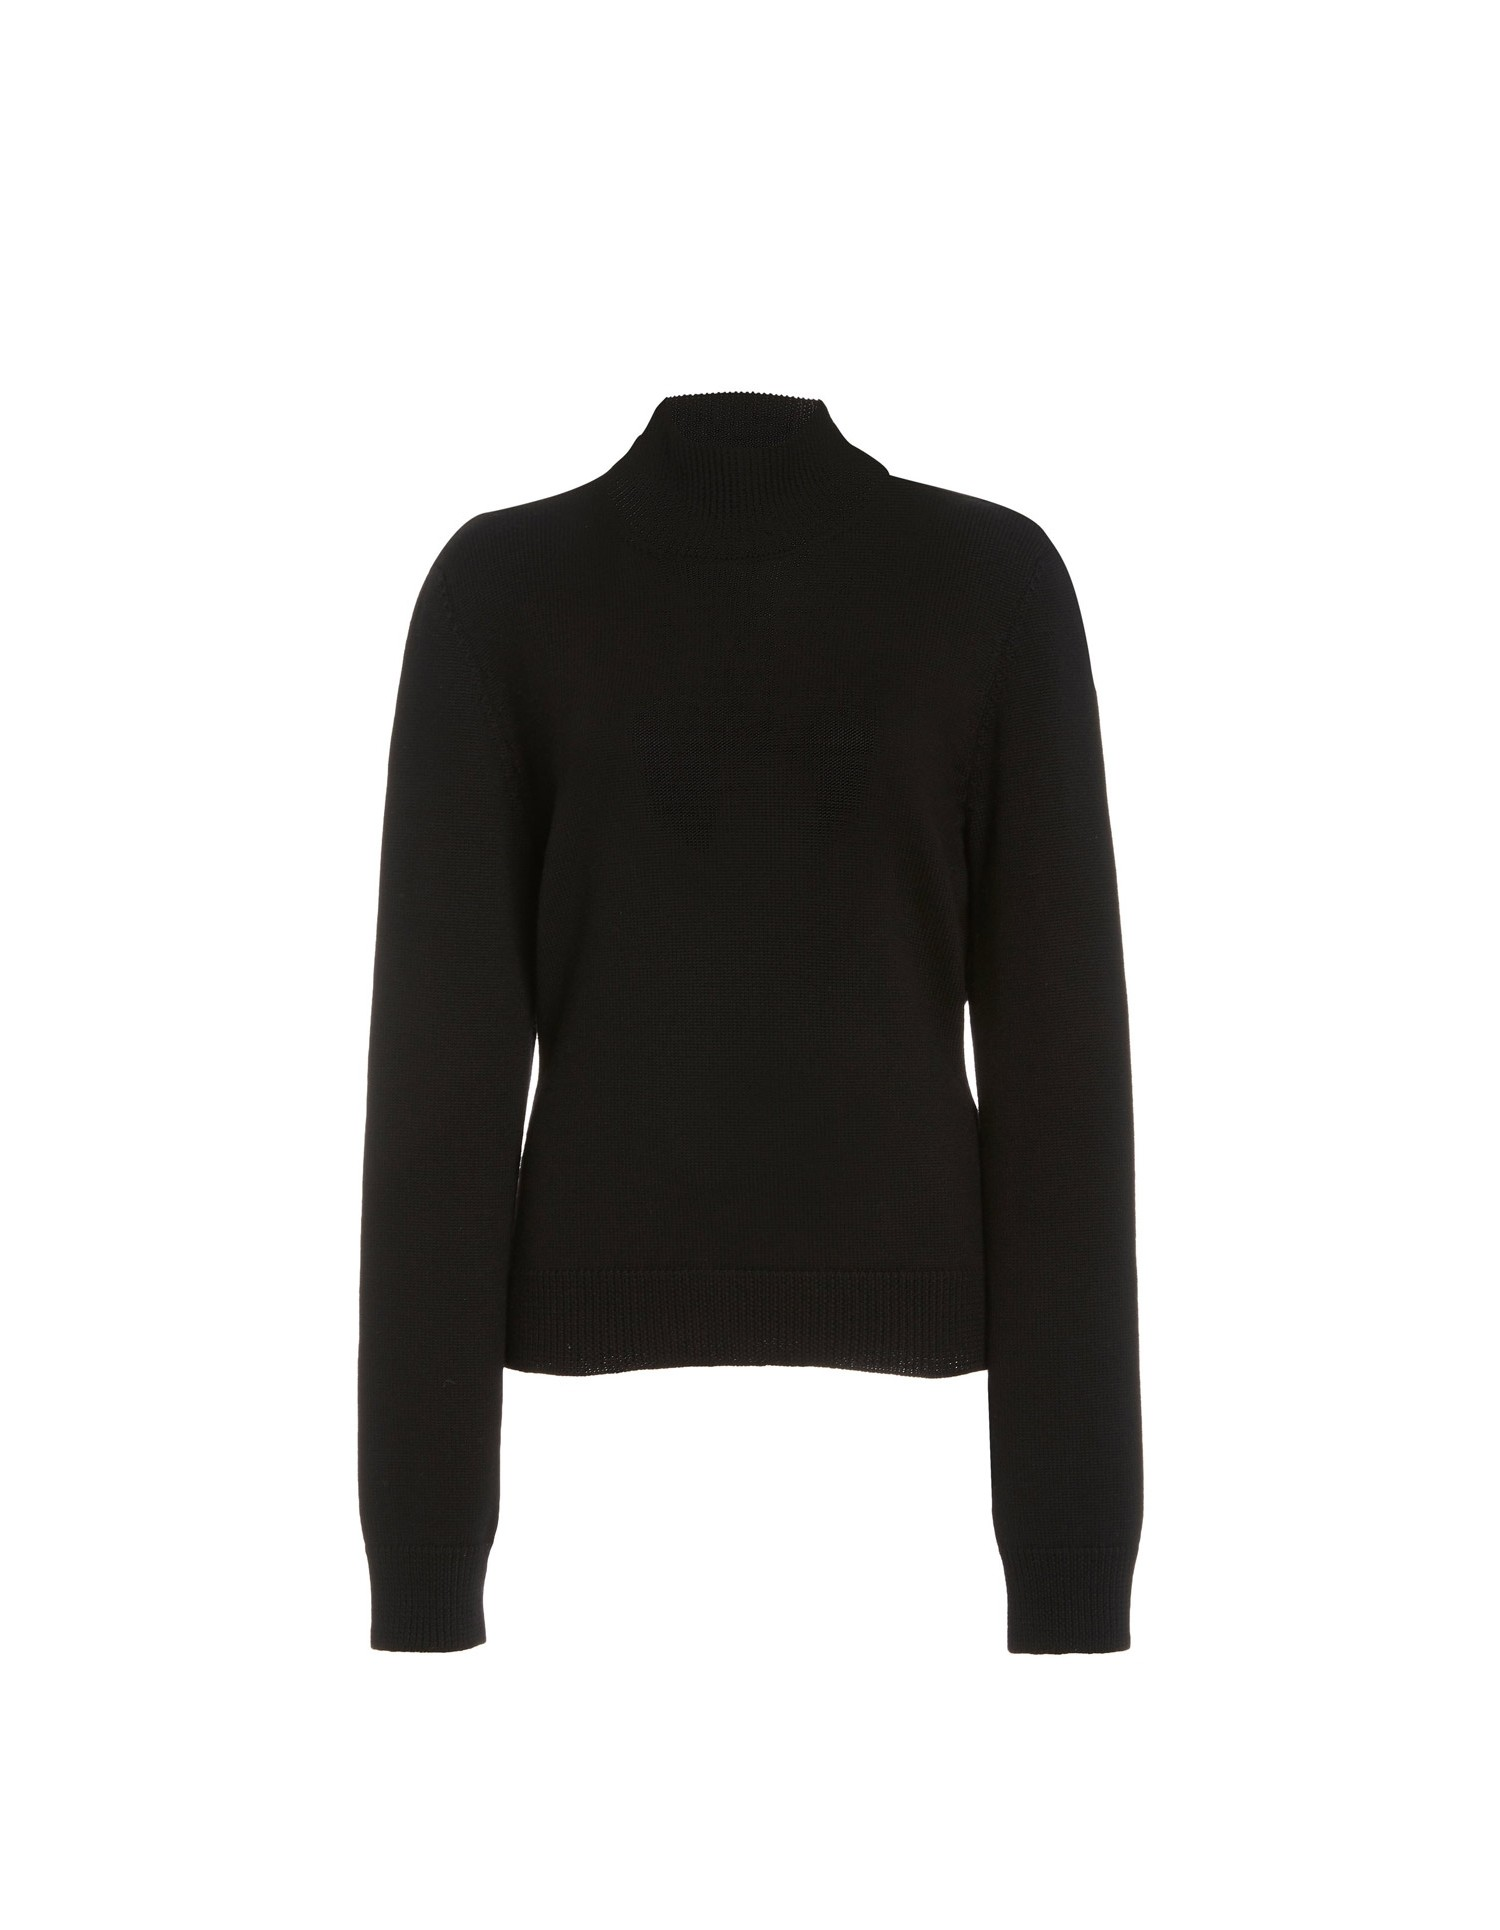 MONSE Ribbed Cowl Back Knit Sweater in Black Flat Front View